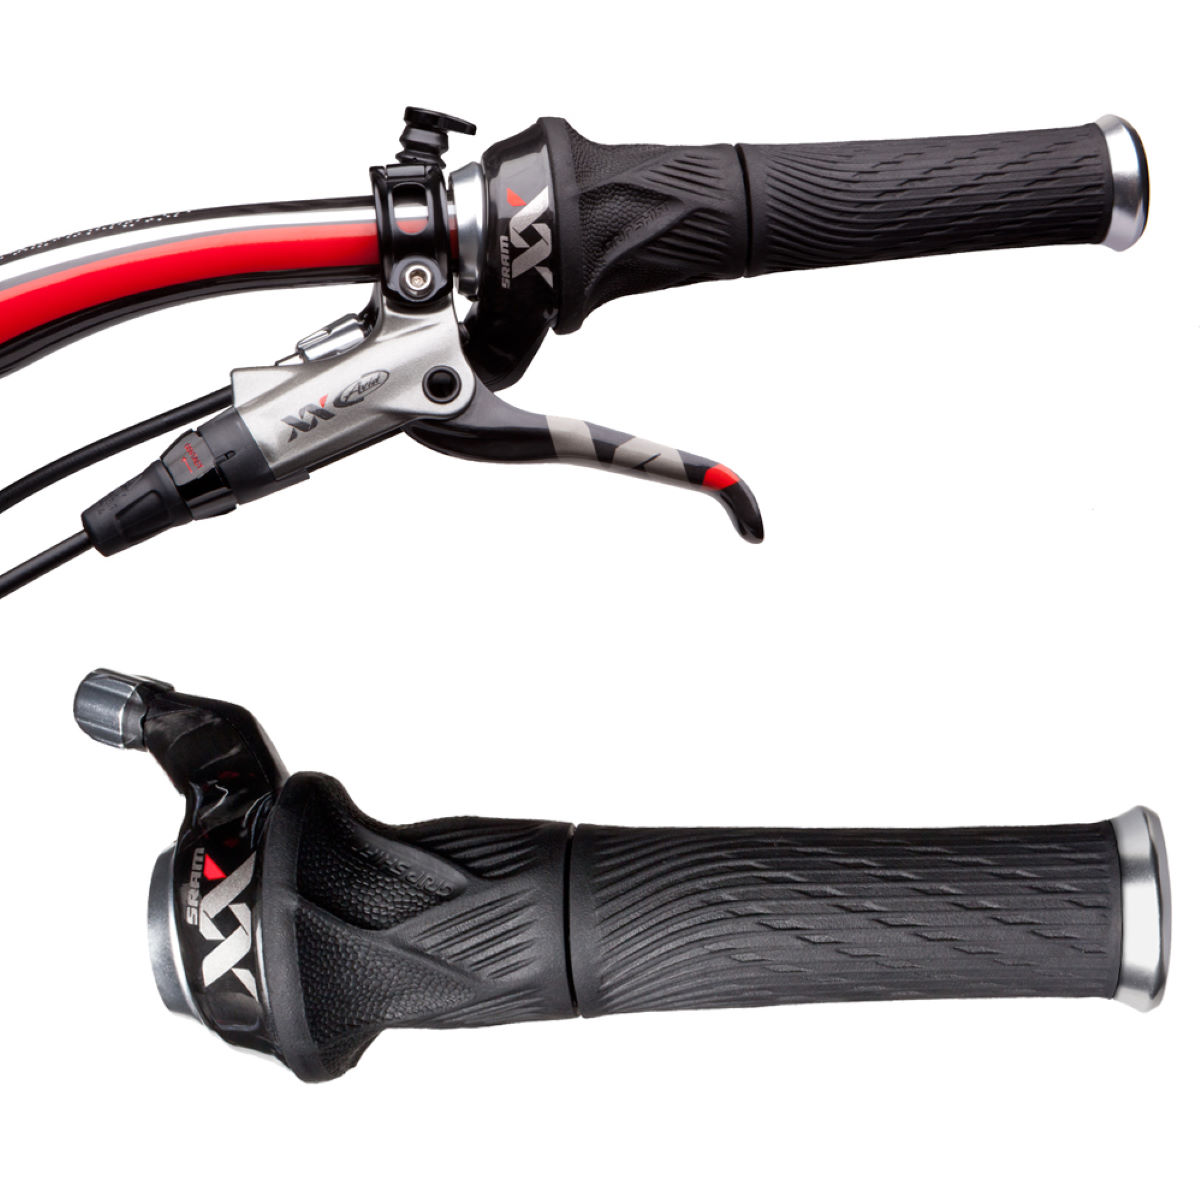 SRAM XX Grip Shift Set (2x10) with Lock-On Grips Gear Levers & Shifters Review